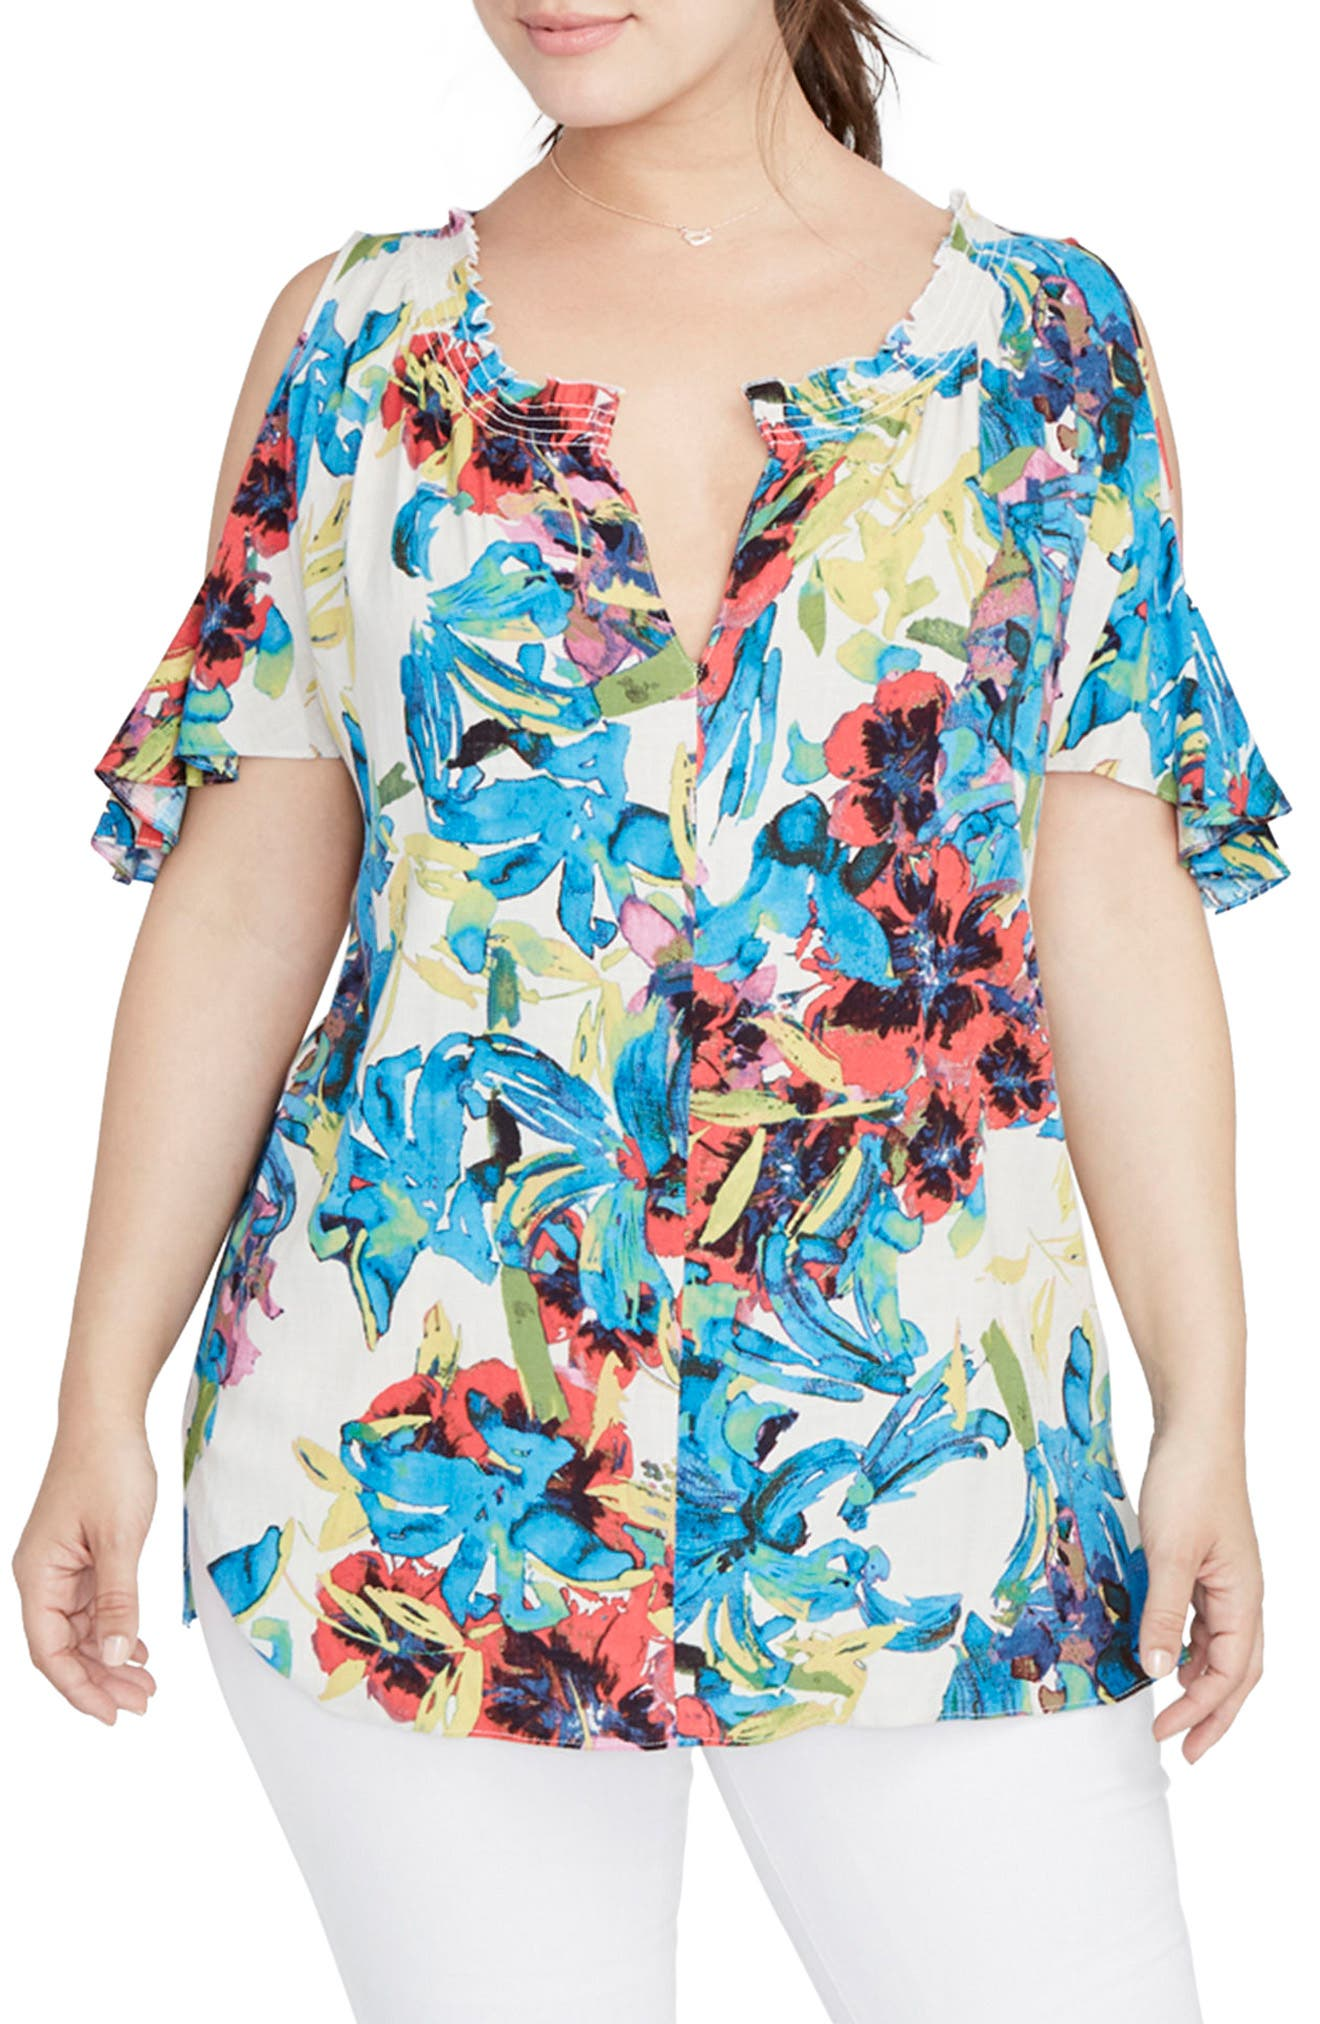 Alternate Image 1 Selected - RACHEL Rachel Roy Vanessa Cold Shoulder Top (Plus Size)